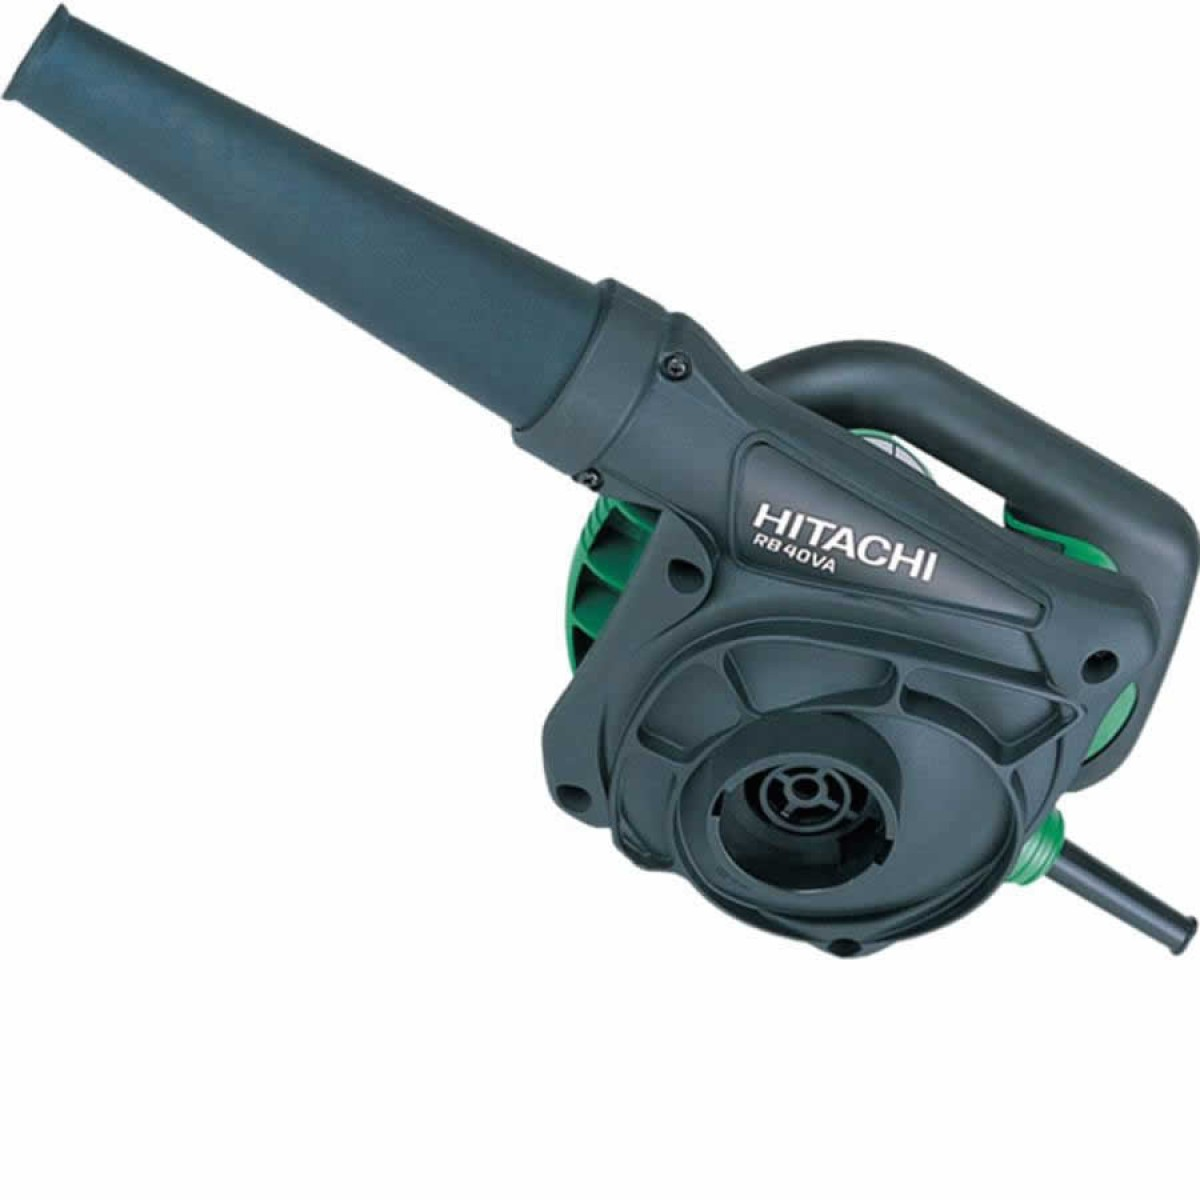 Power Tools Product : Hitachi blower rb va others power tools products